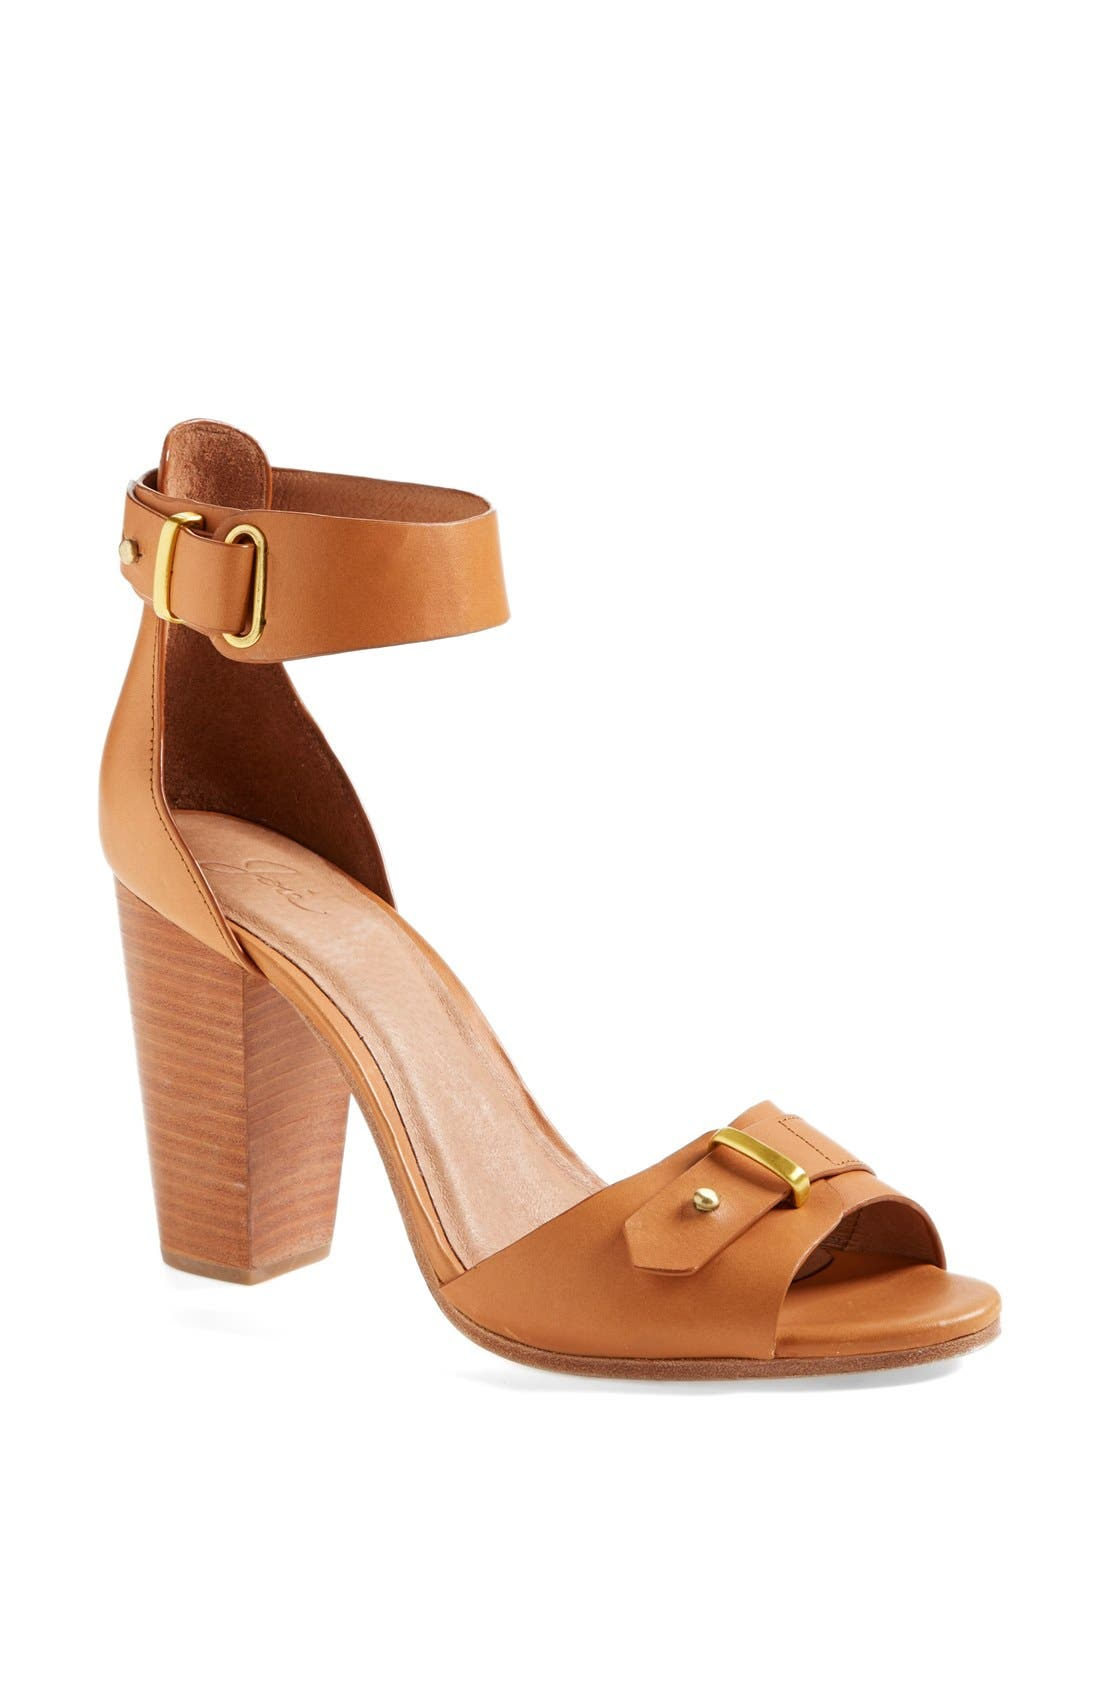 Main Image - Joie Ankle Strap Sandal